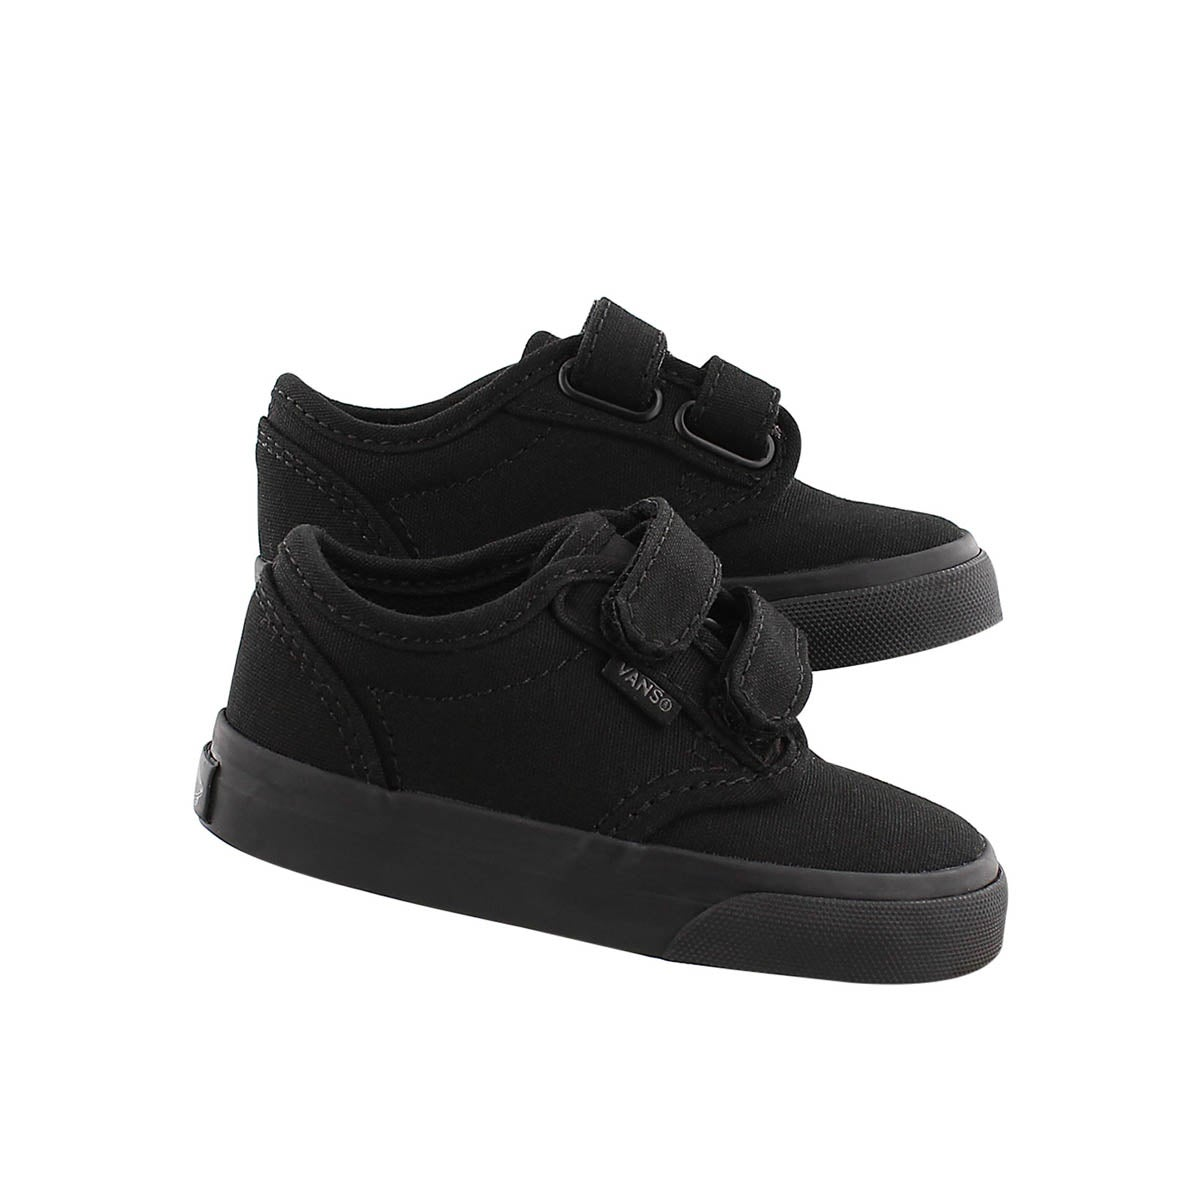 Infs-b Atwood black canvas sneaker